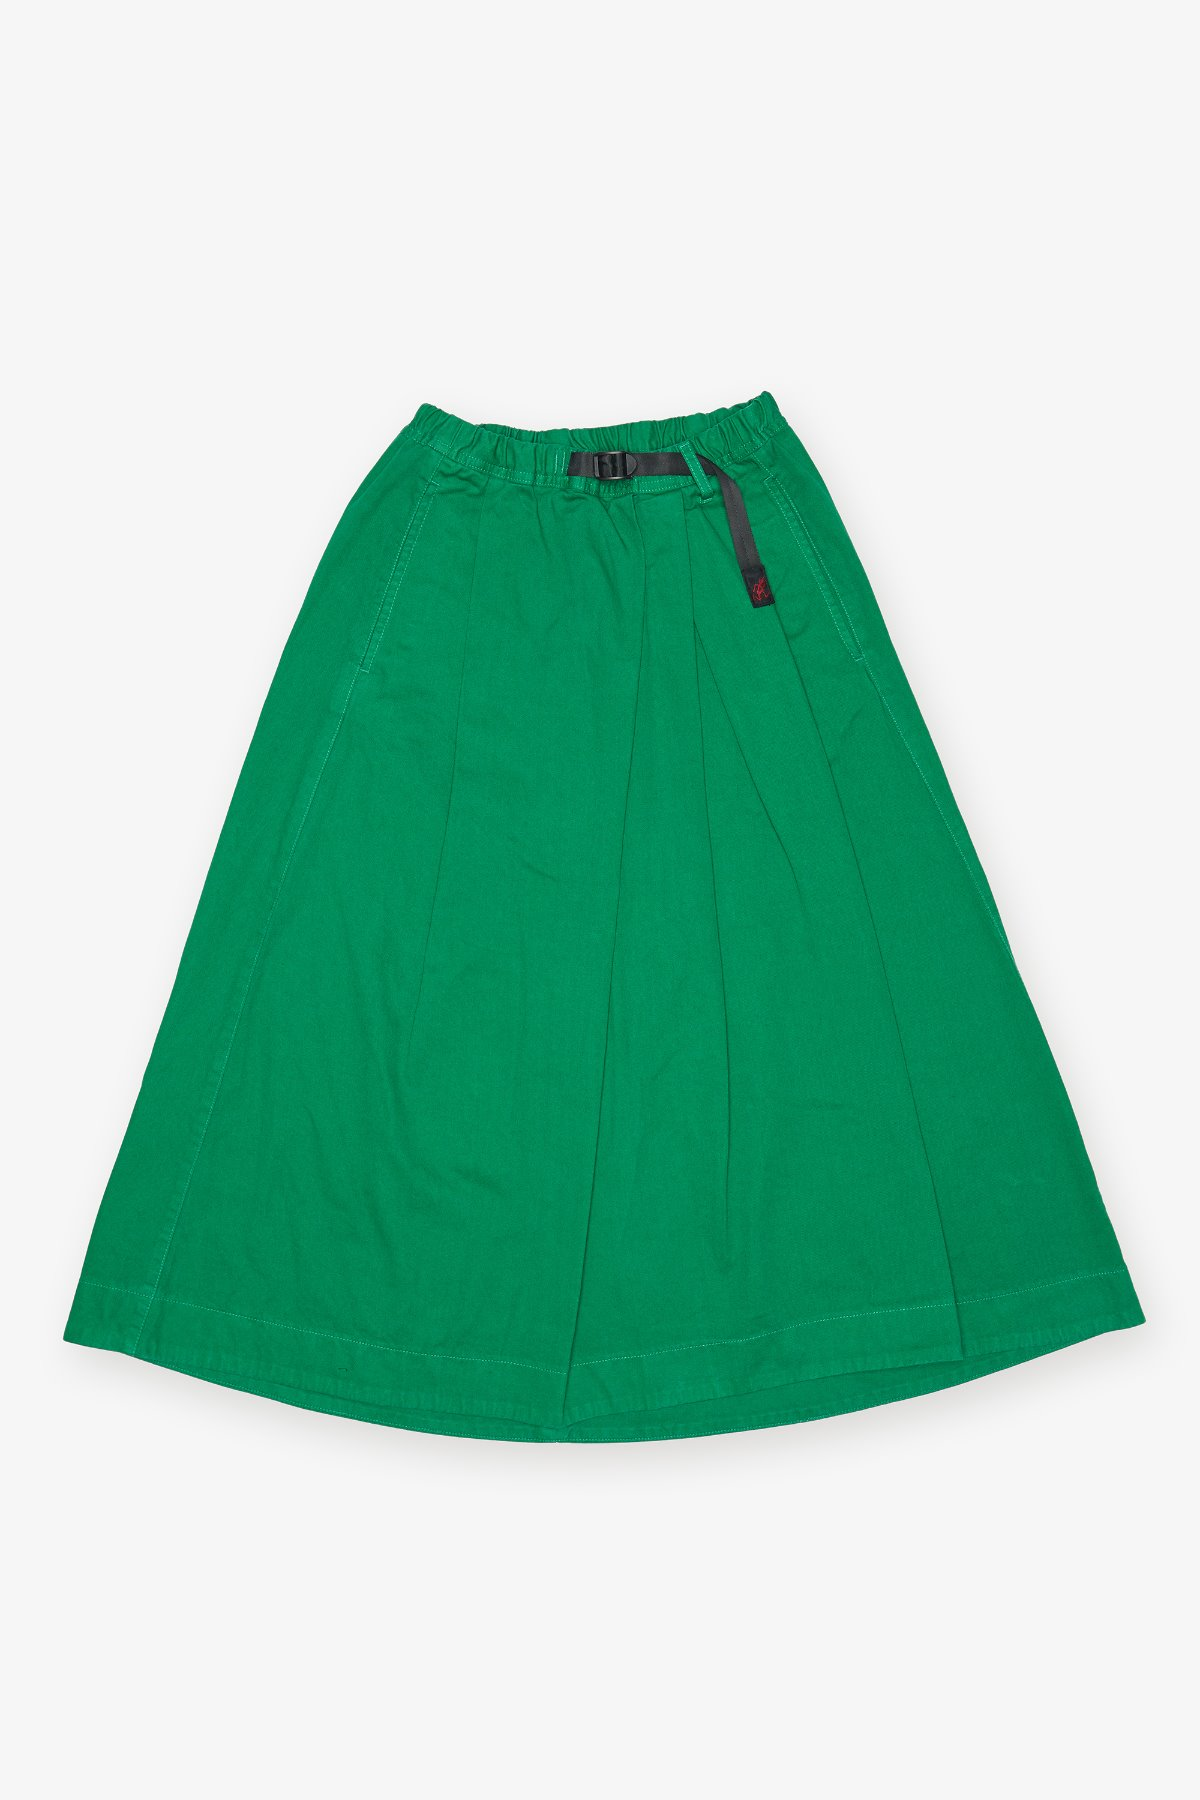 TALE CUT SKIRT MIDDLE GREEN